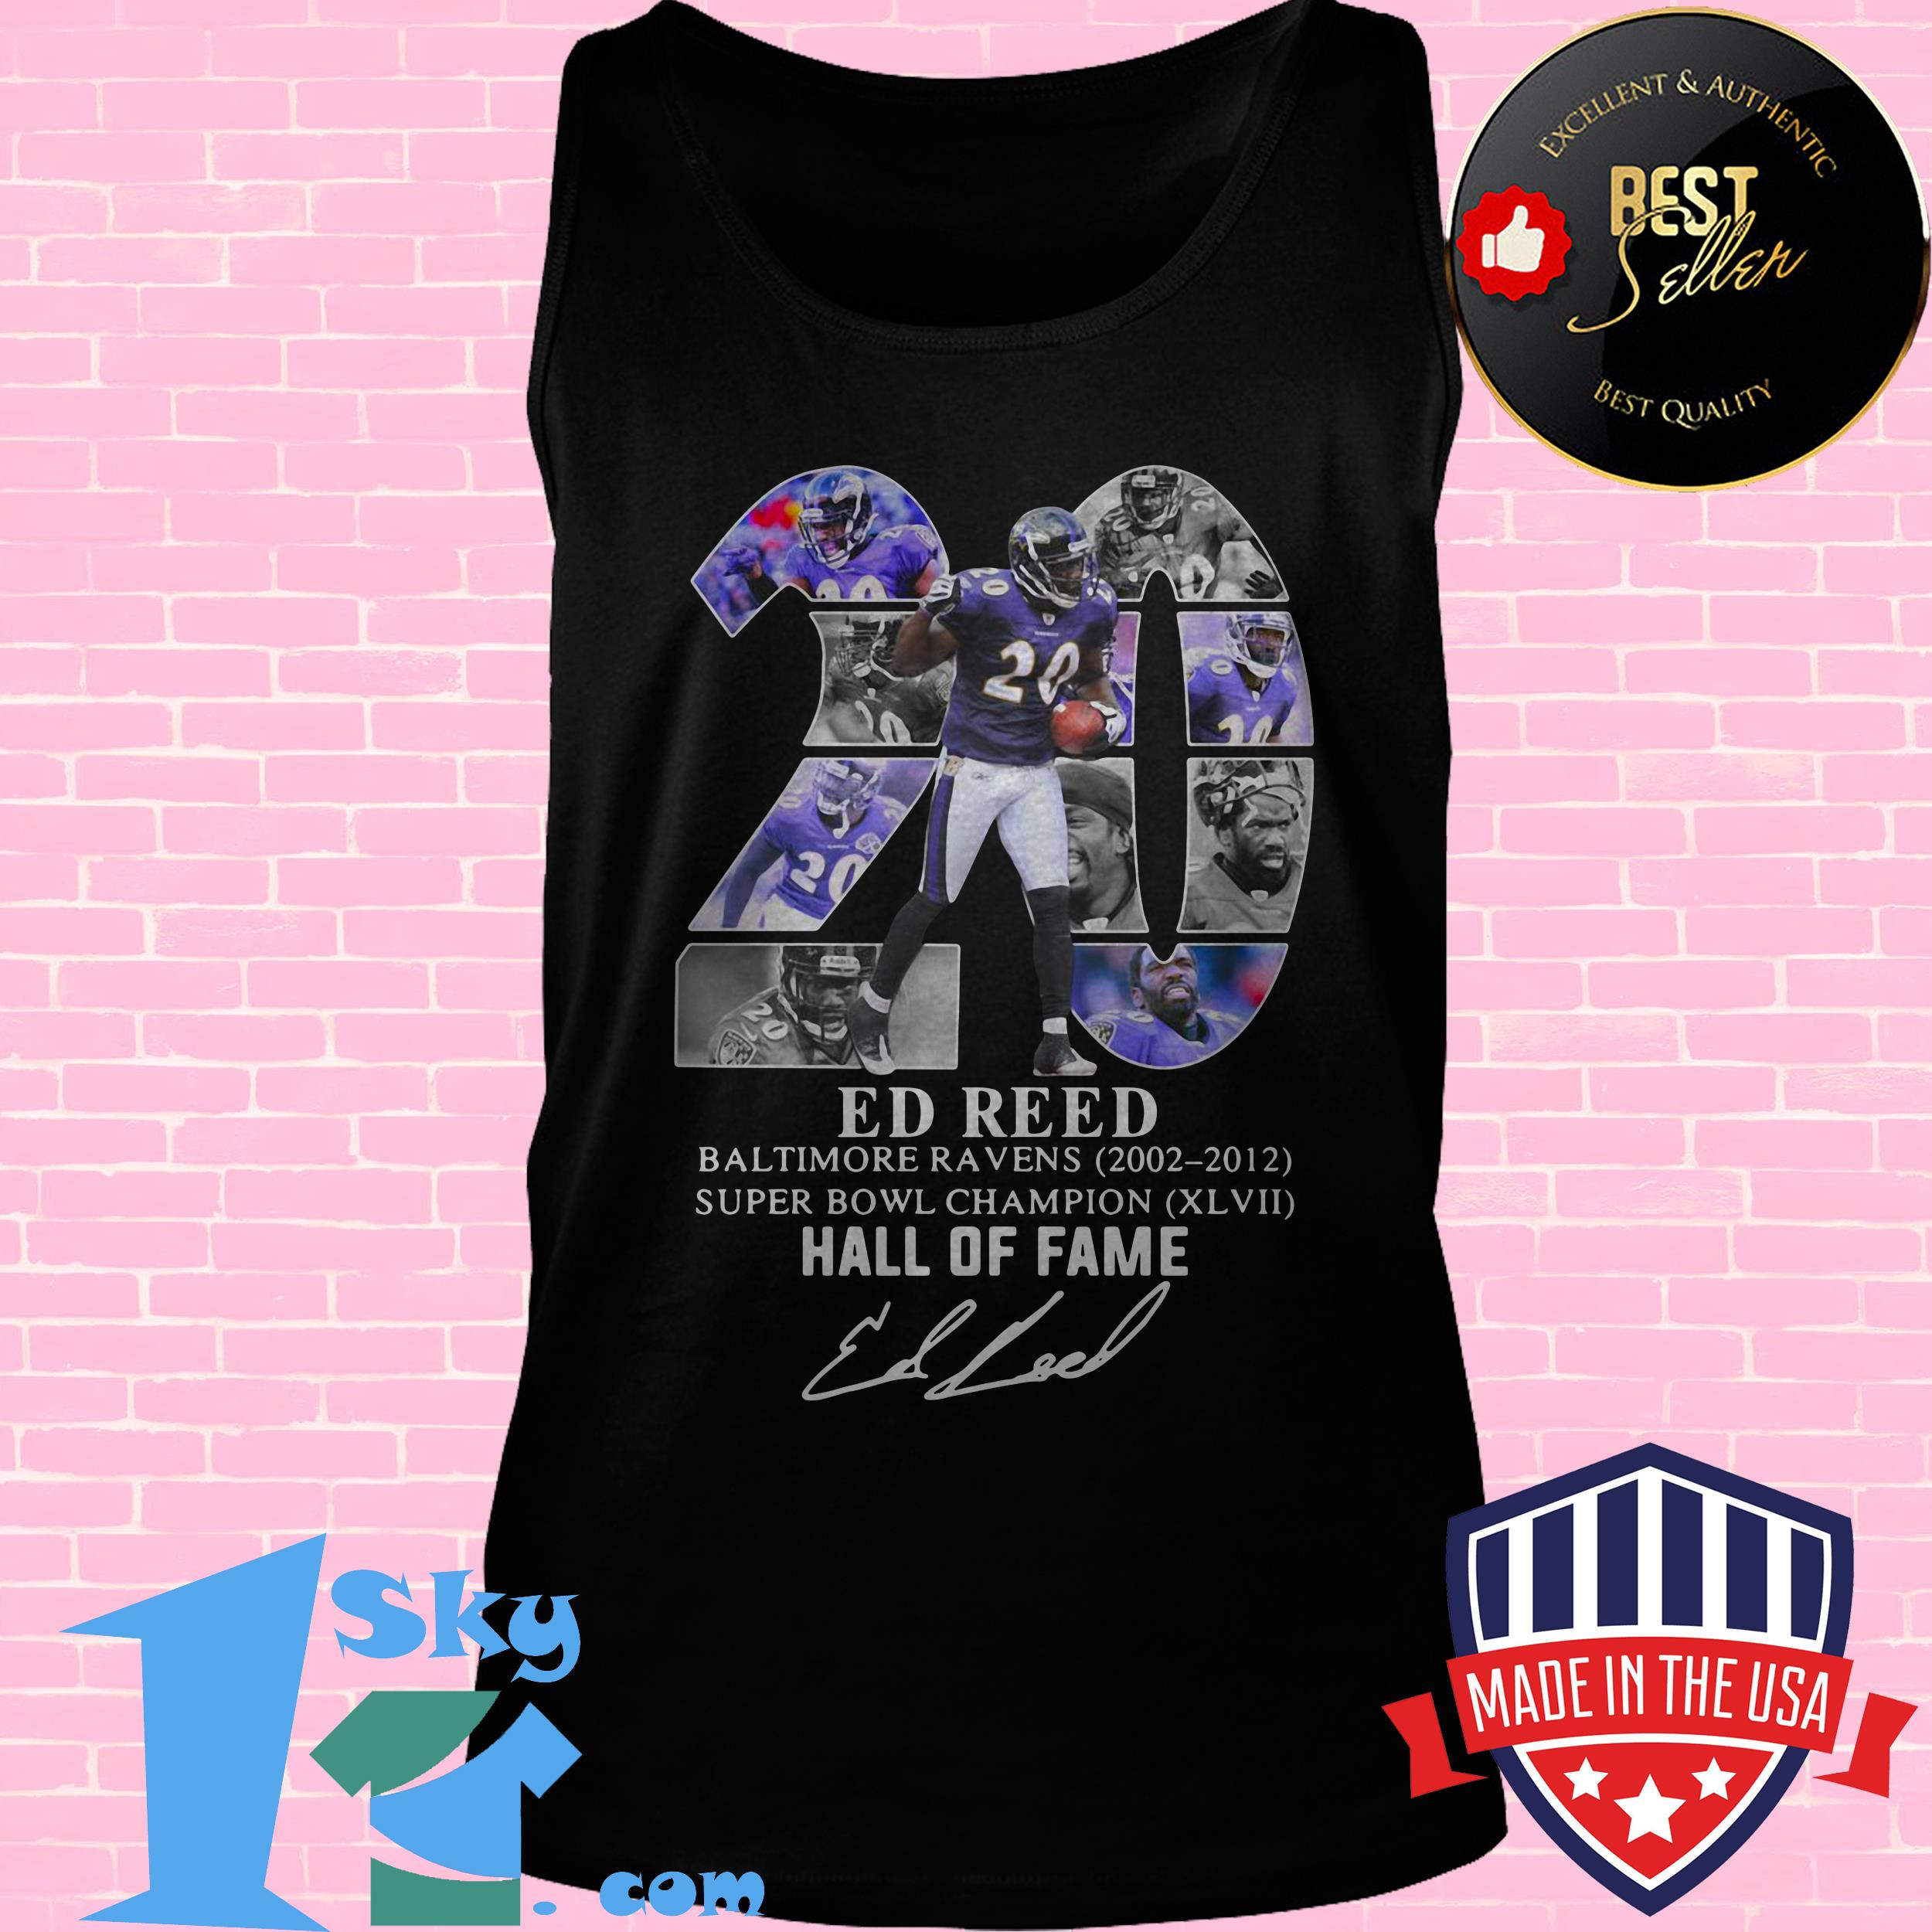 20 ed reed black baltimore ravens super bowl champion hall of fame signature tank top - 20 Ed Reed Black Baltimore Ravens Super Bowl Champion Hall of Fame Signature shirt